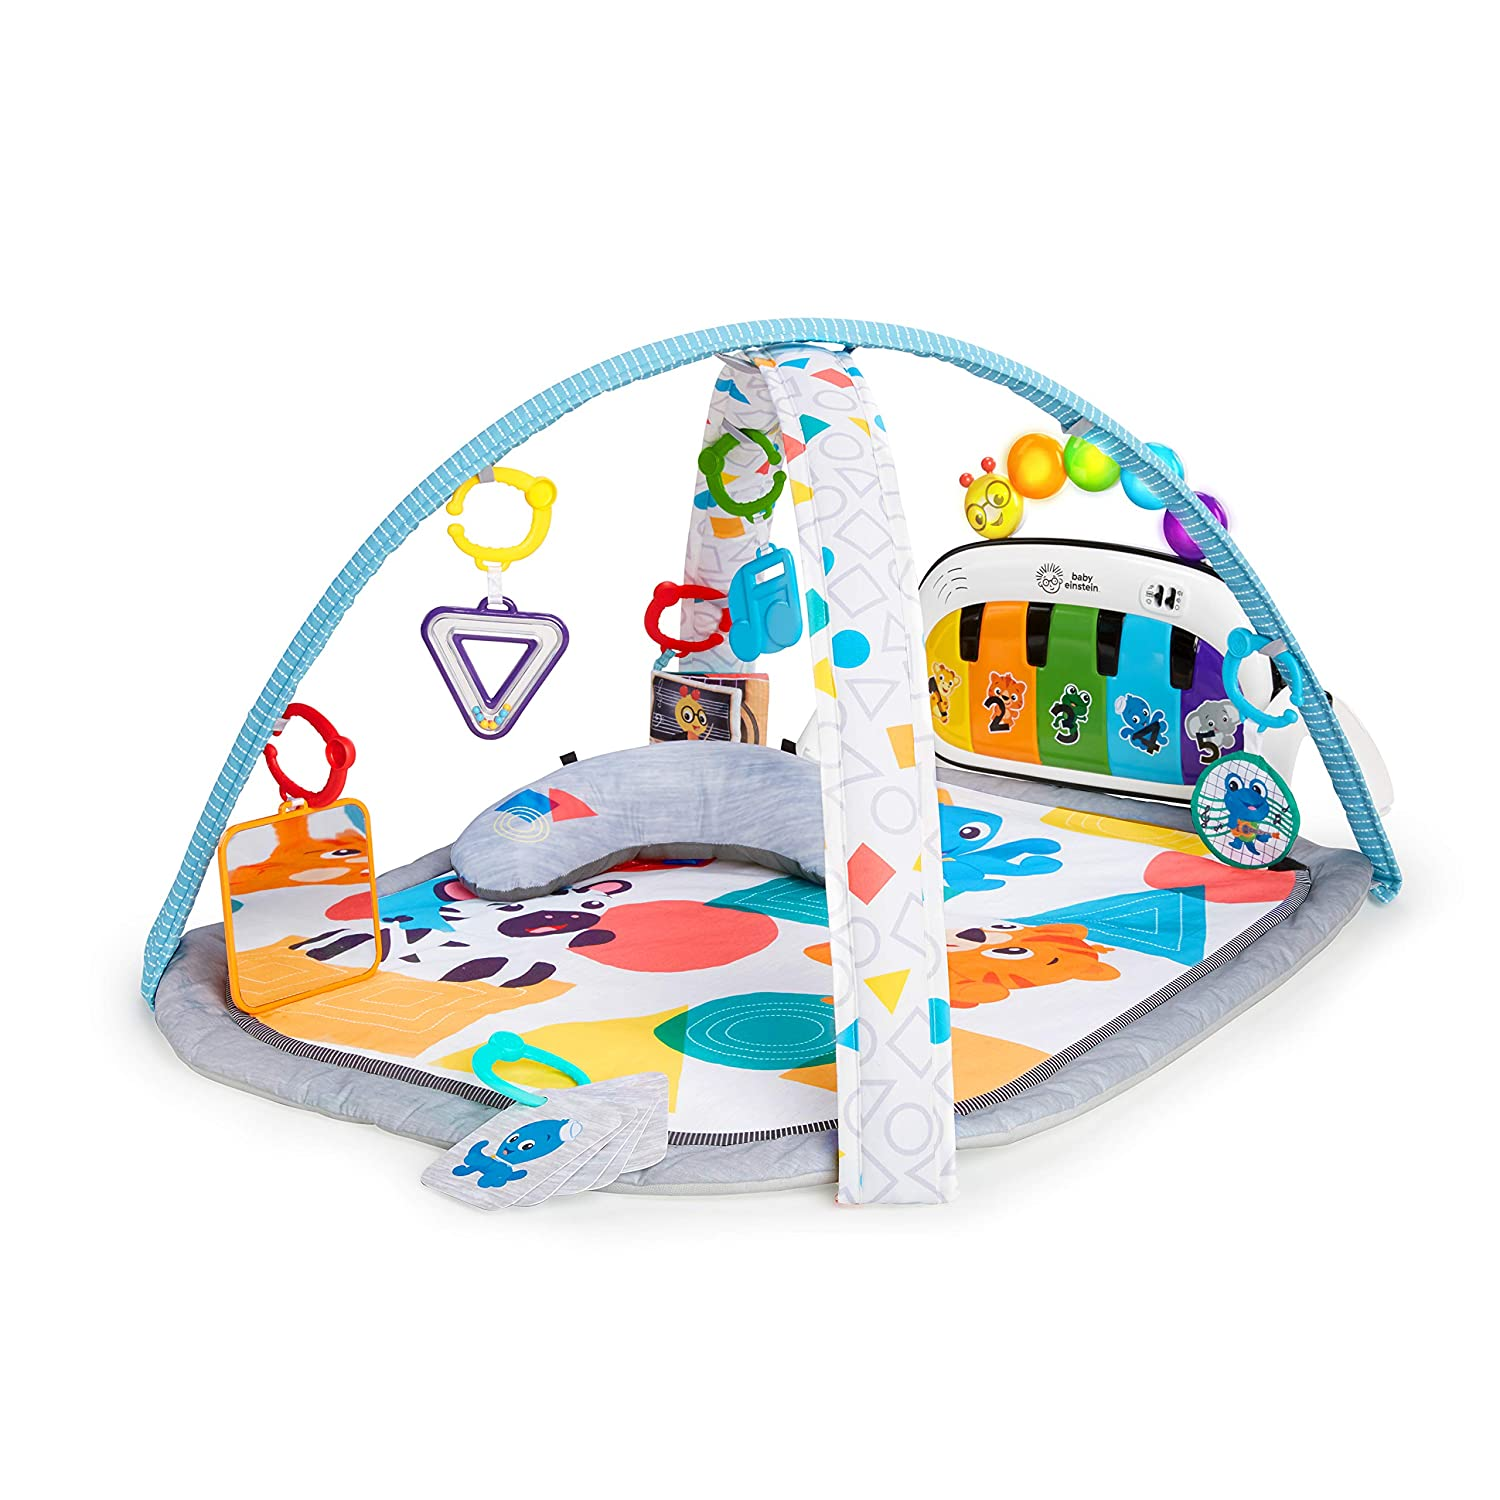 Baby Einstein 4-in-1 Kickin' Tunes Music and Language Discovery Play Gym Kids II - (Carson CA) 11749